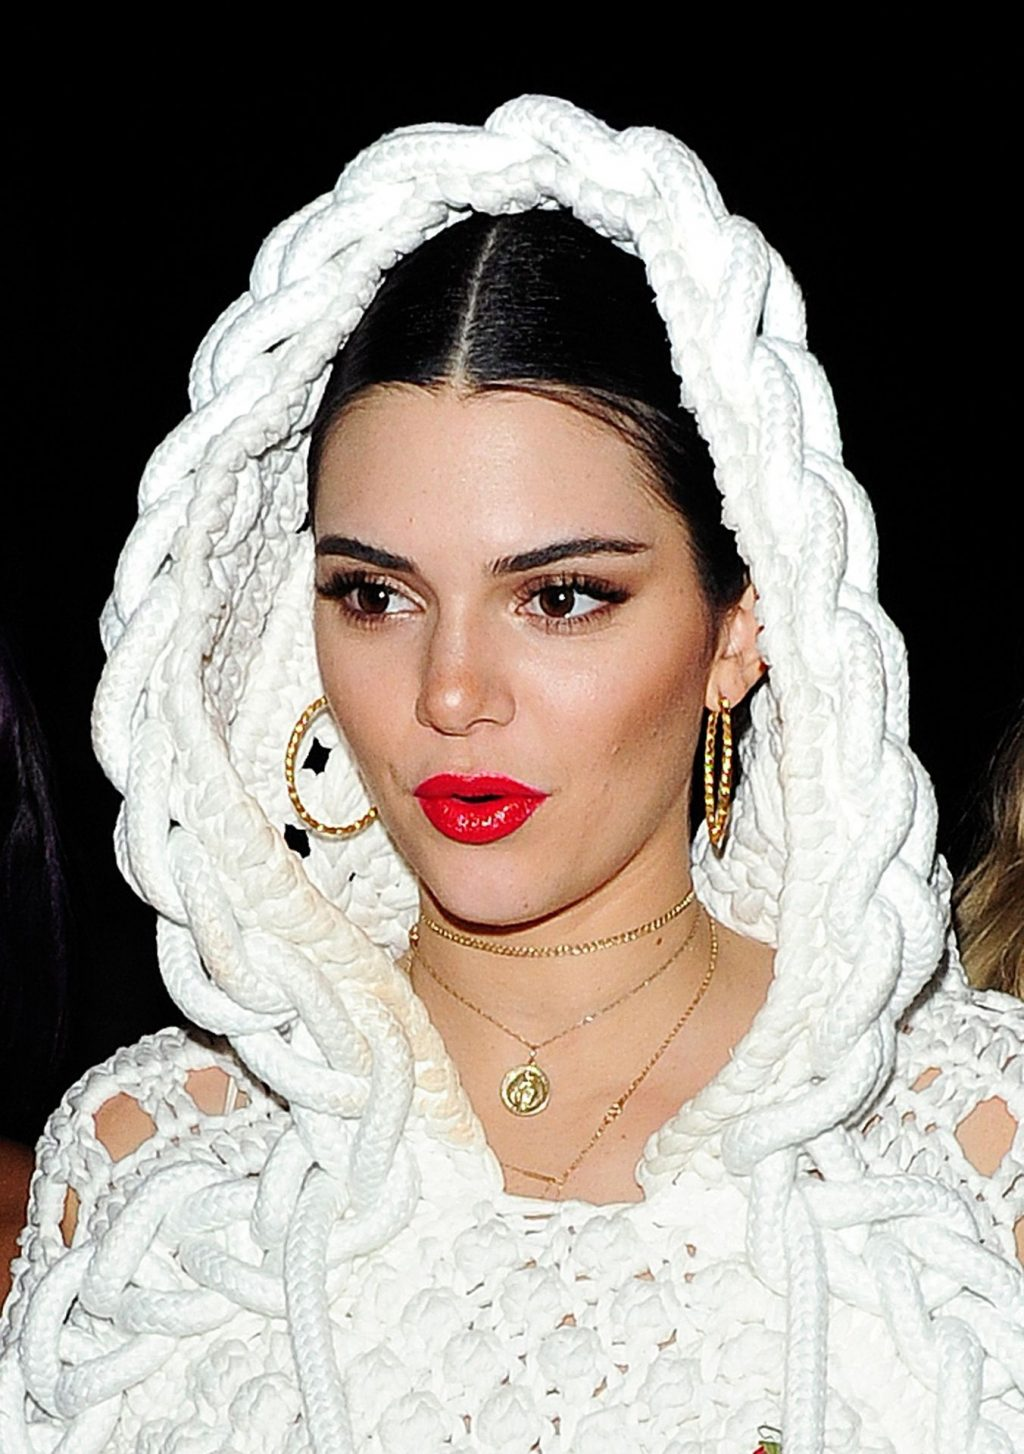 Vogue Staffers Complained of The Title's Treatment of the Photos of Kendall Jenner's Gold Tooth (43 Pics)